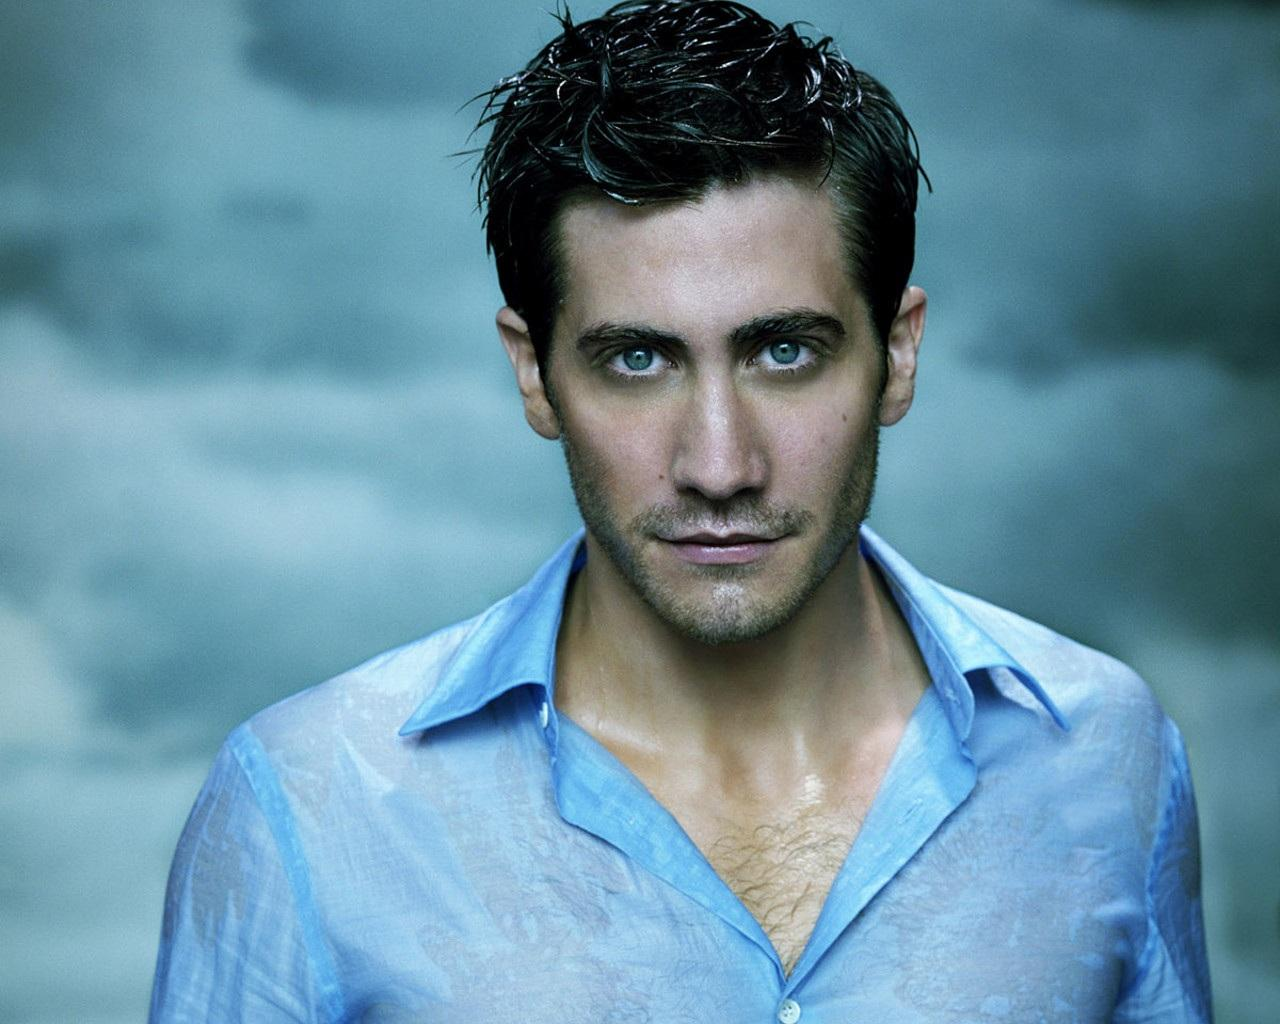 jake-gyllenhaal-sexy-wet-chest-body-1376